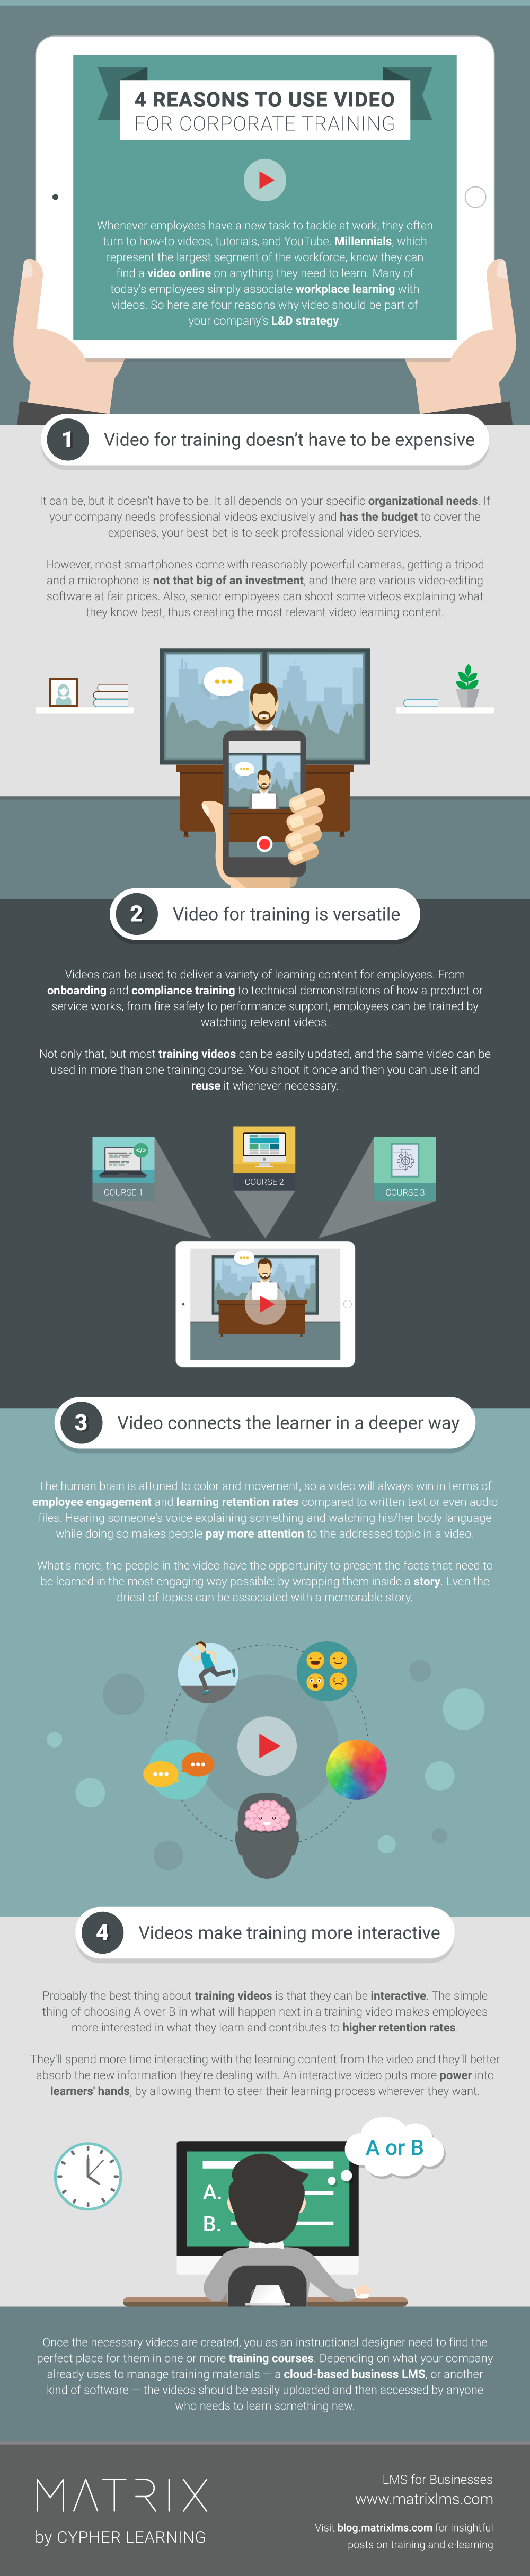 4 Reasons to Use Video for Corporate Training